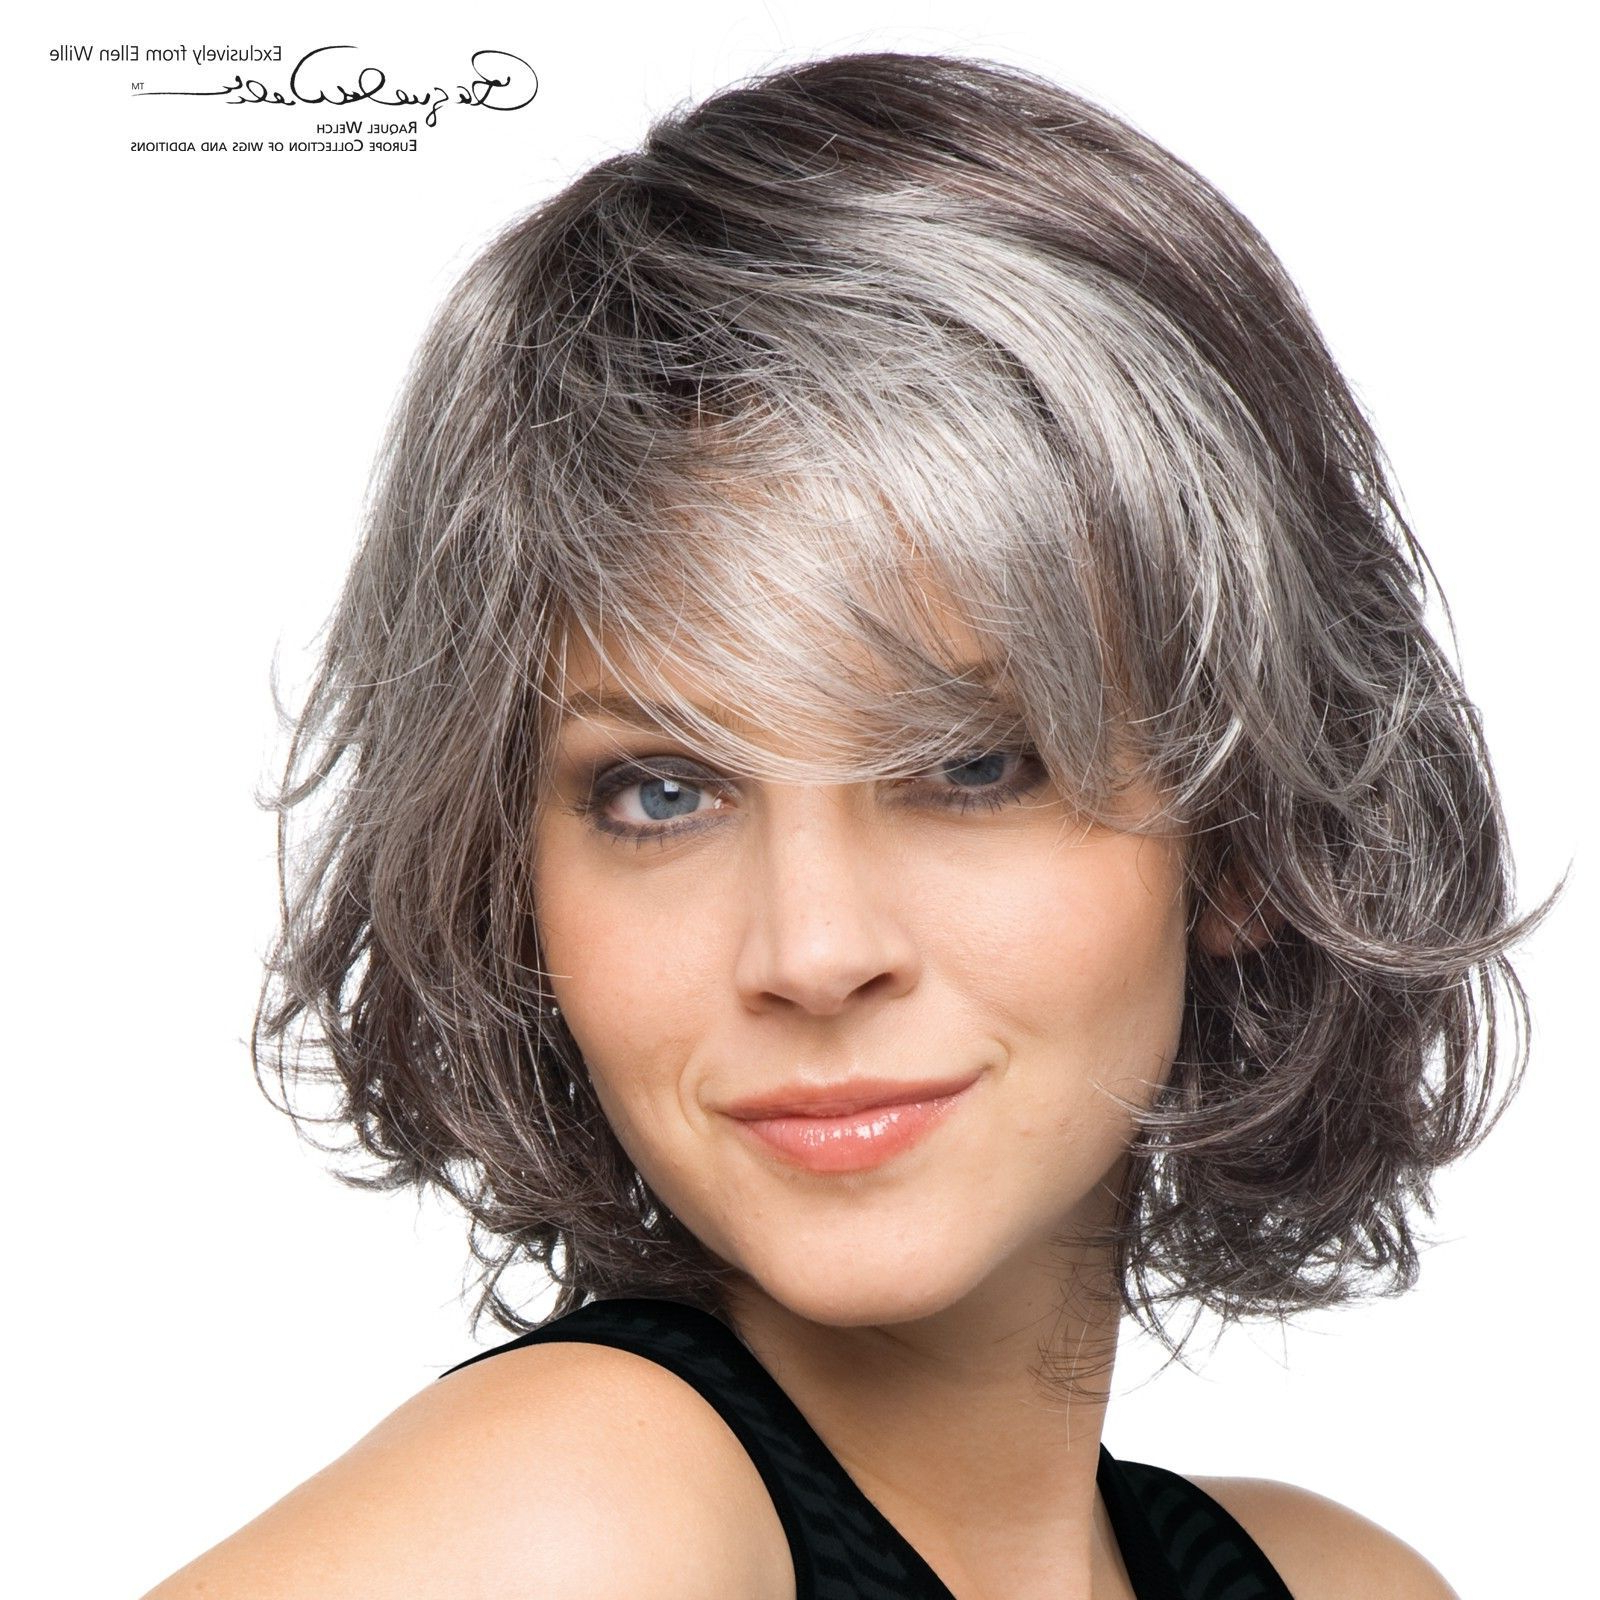 Image Result For Short Hair Styles For Women Over 50 Gray Hair Regarding Famous Medium Haircuts For Women With Grey Hair (View 10 of 20)